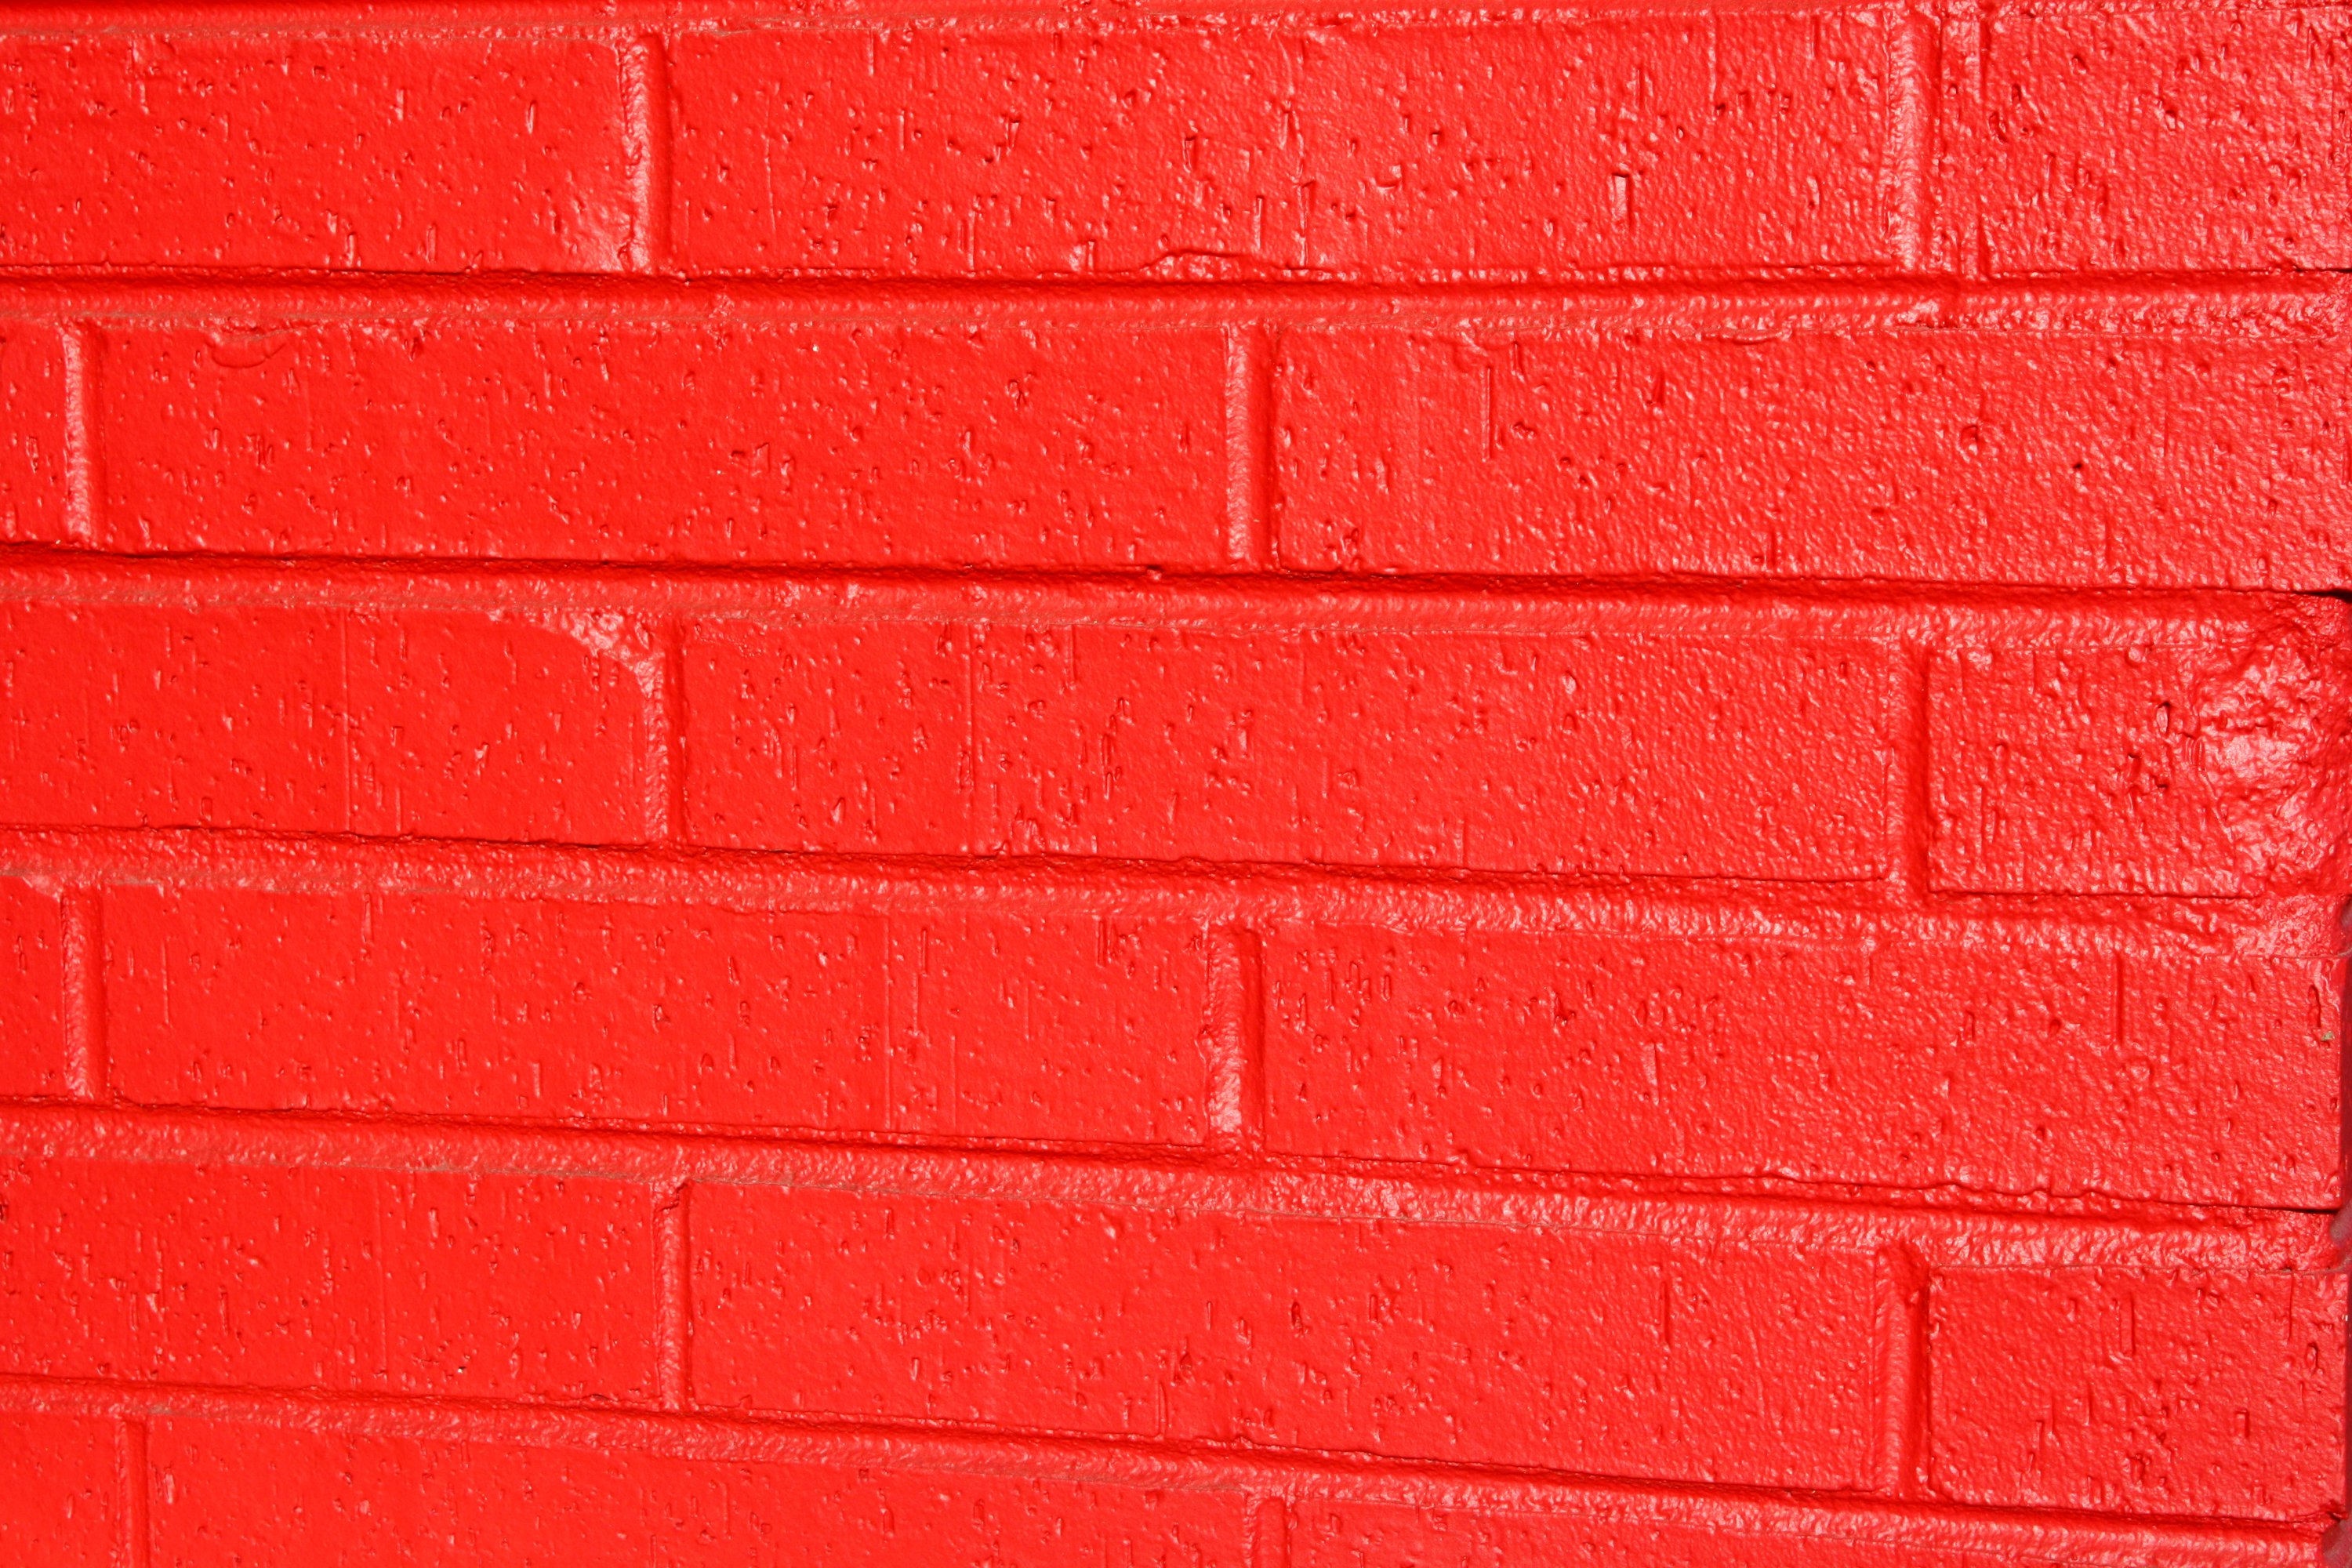 Red Paint Wall Free photo of red painted brick wall texture